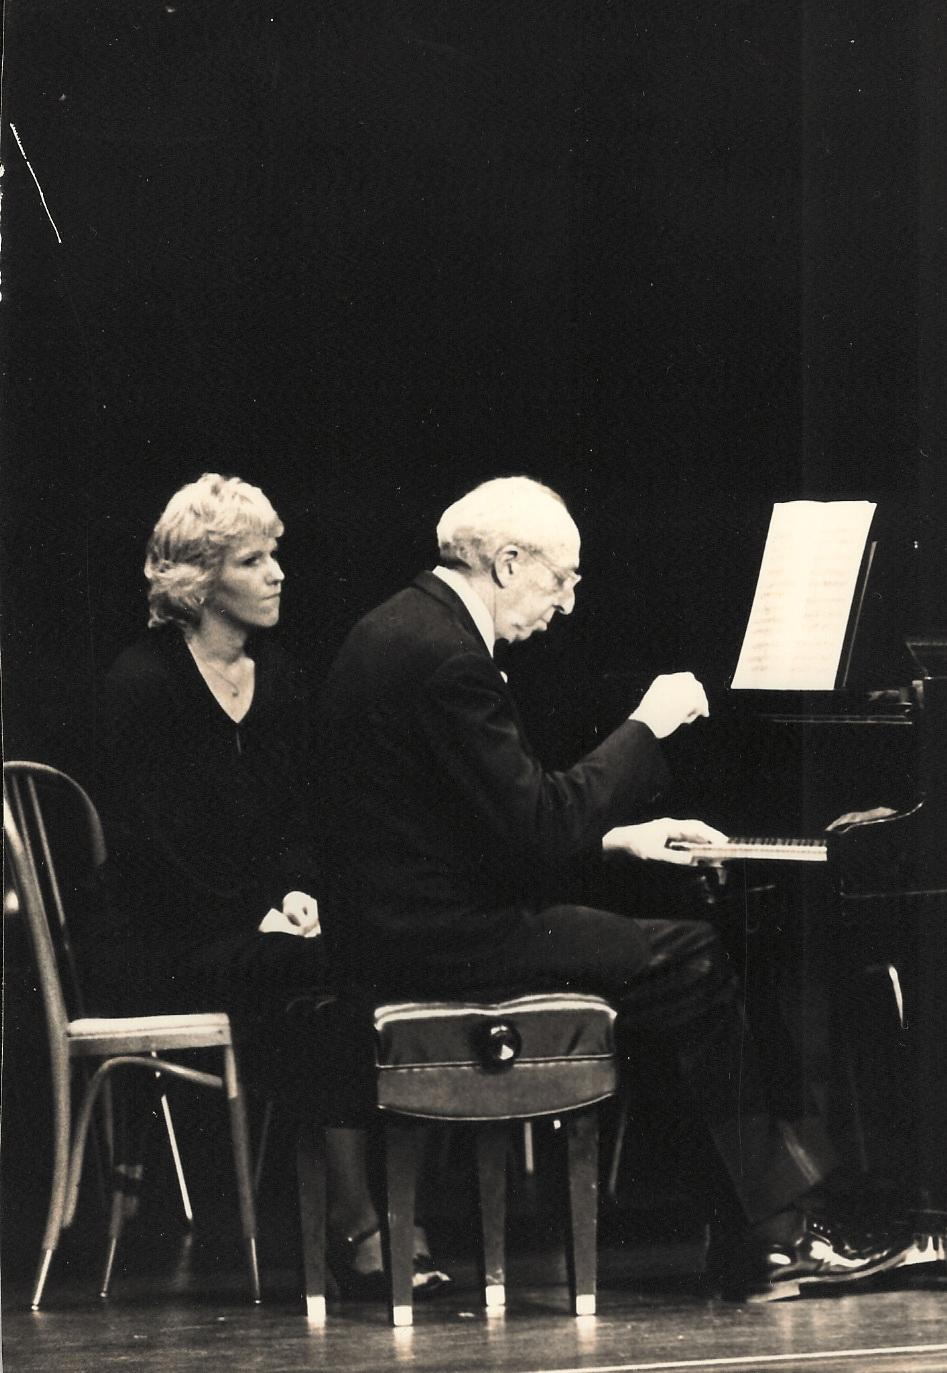 a review from music concert in aaron copland school of music The aaron copland school of music (acsm) is located in flushing, new york   300 concerts a year including recitals, orchestra, choir, ensembles, new music,.